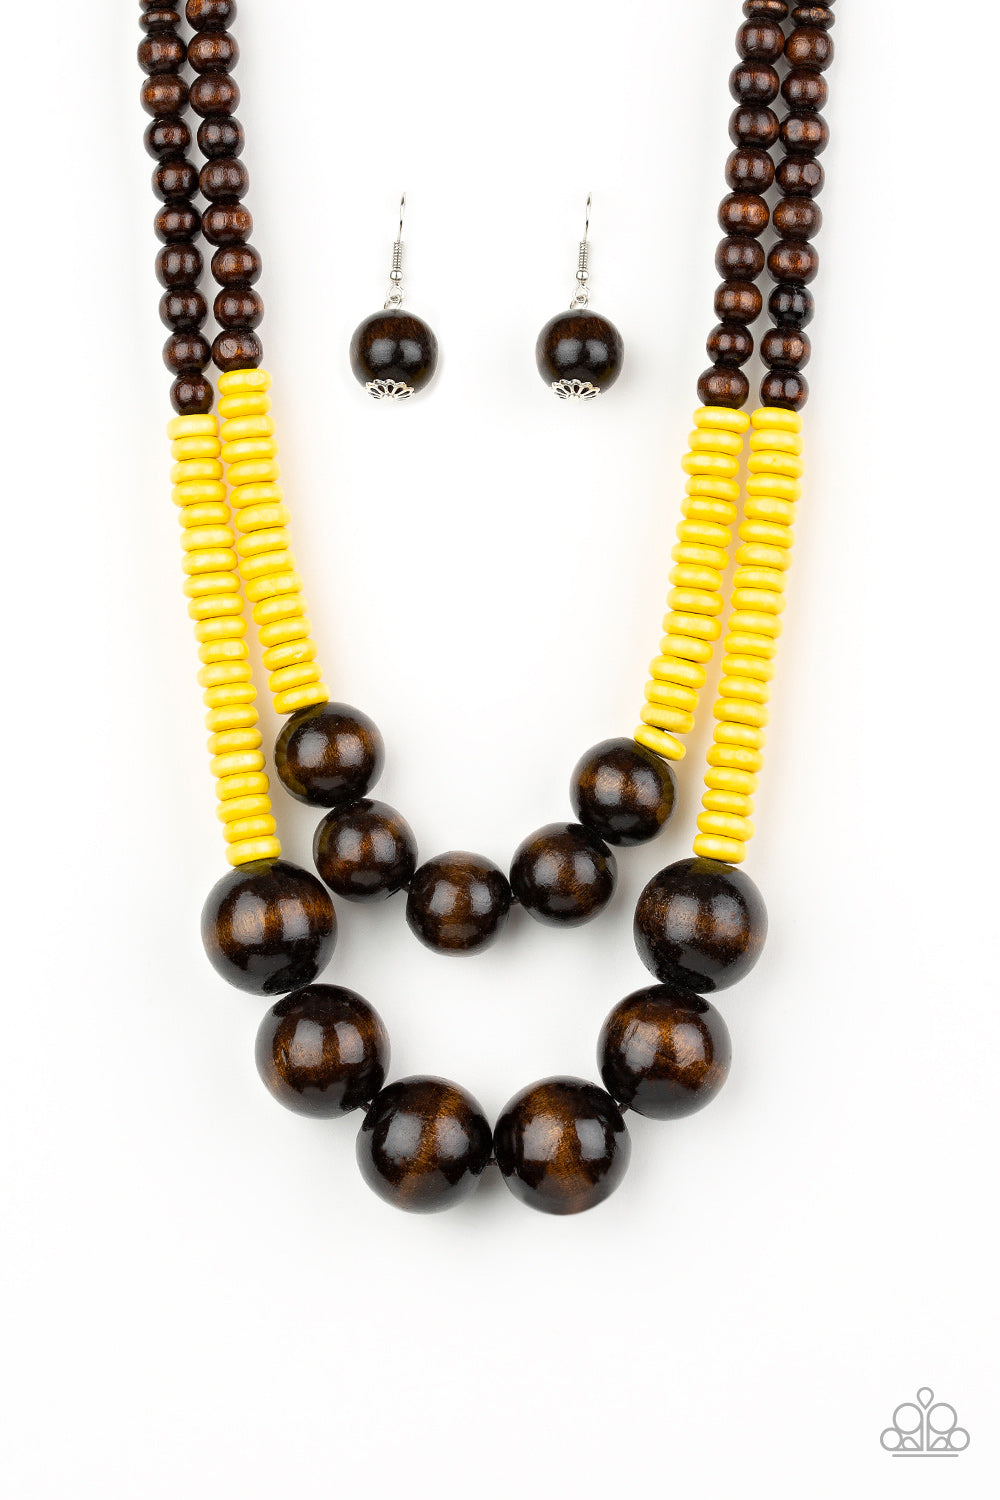 Paparazzi Accessories - Cancun Cast Away - Yellow/Brown Necklace Set - JMJ Jewelry Collection